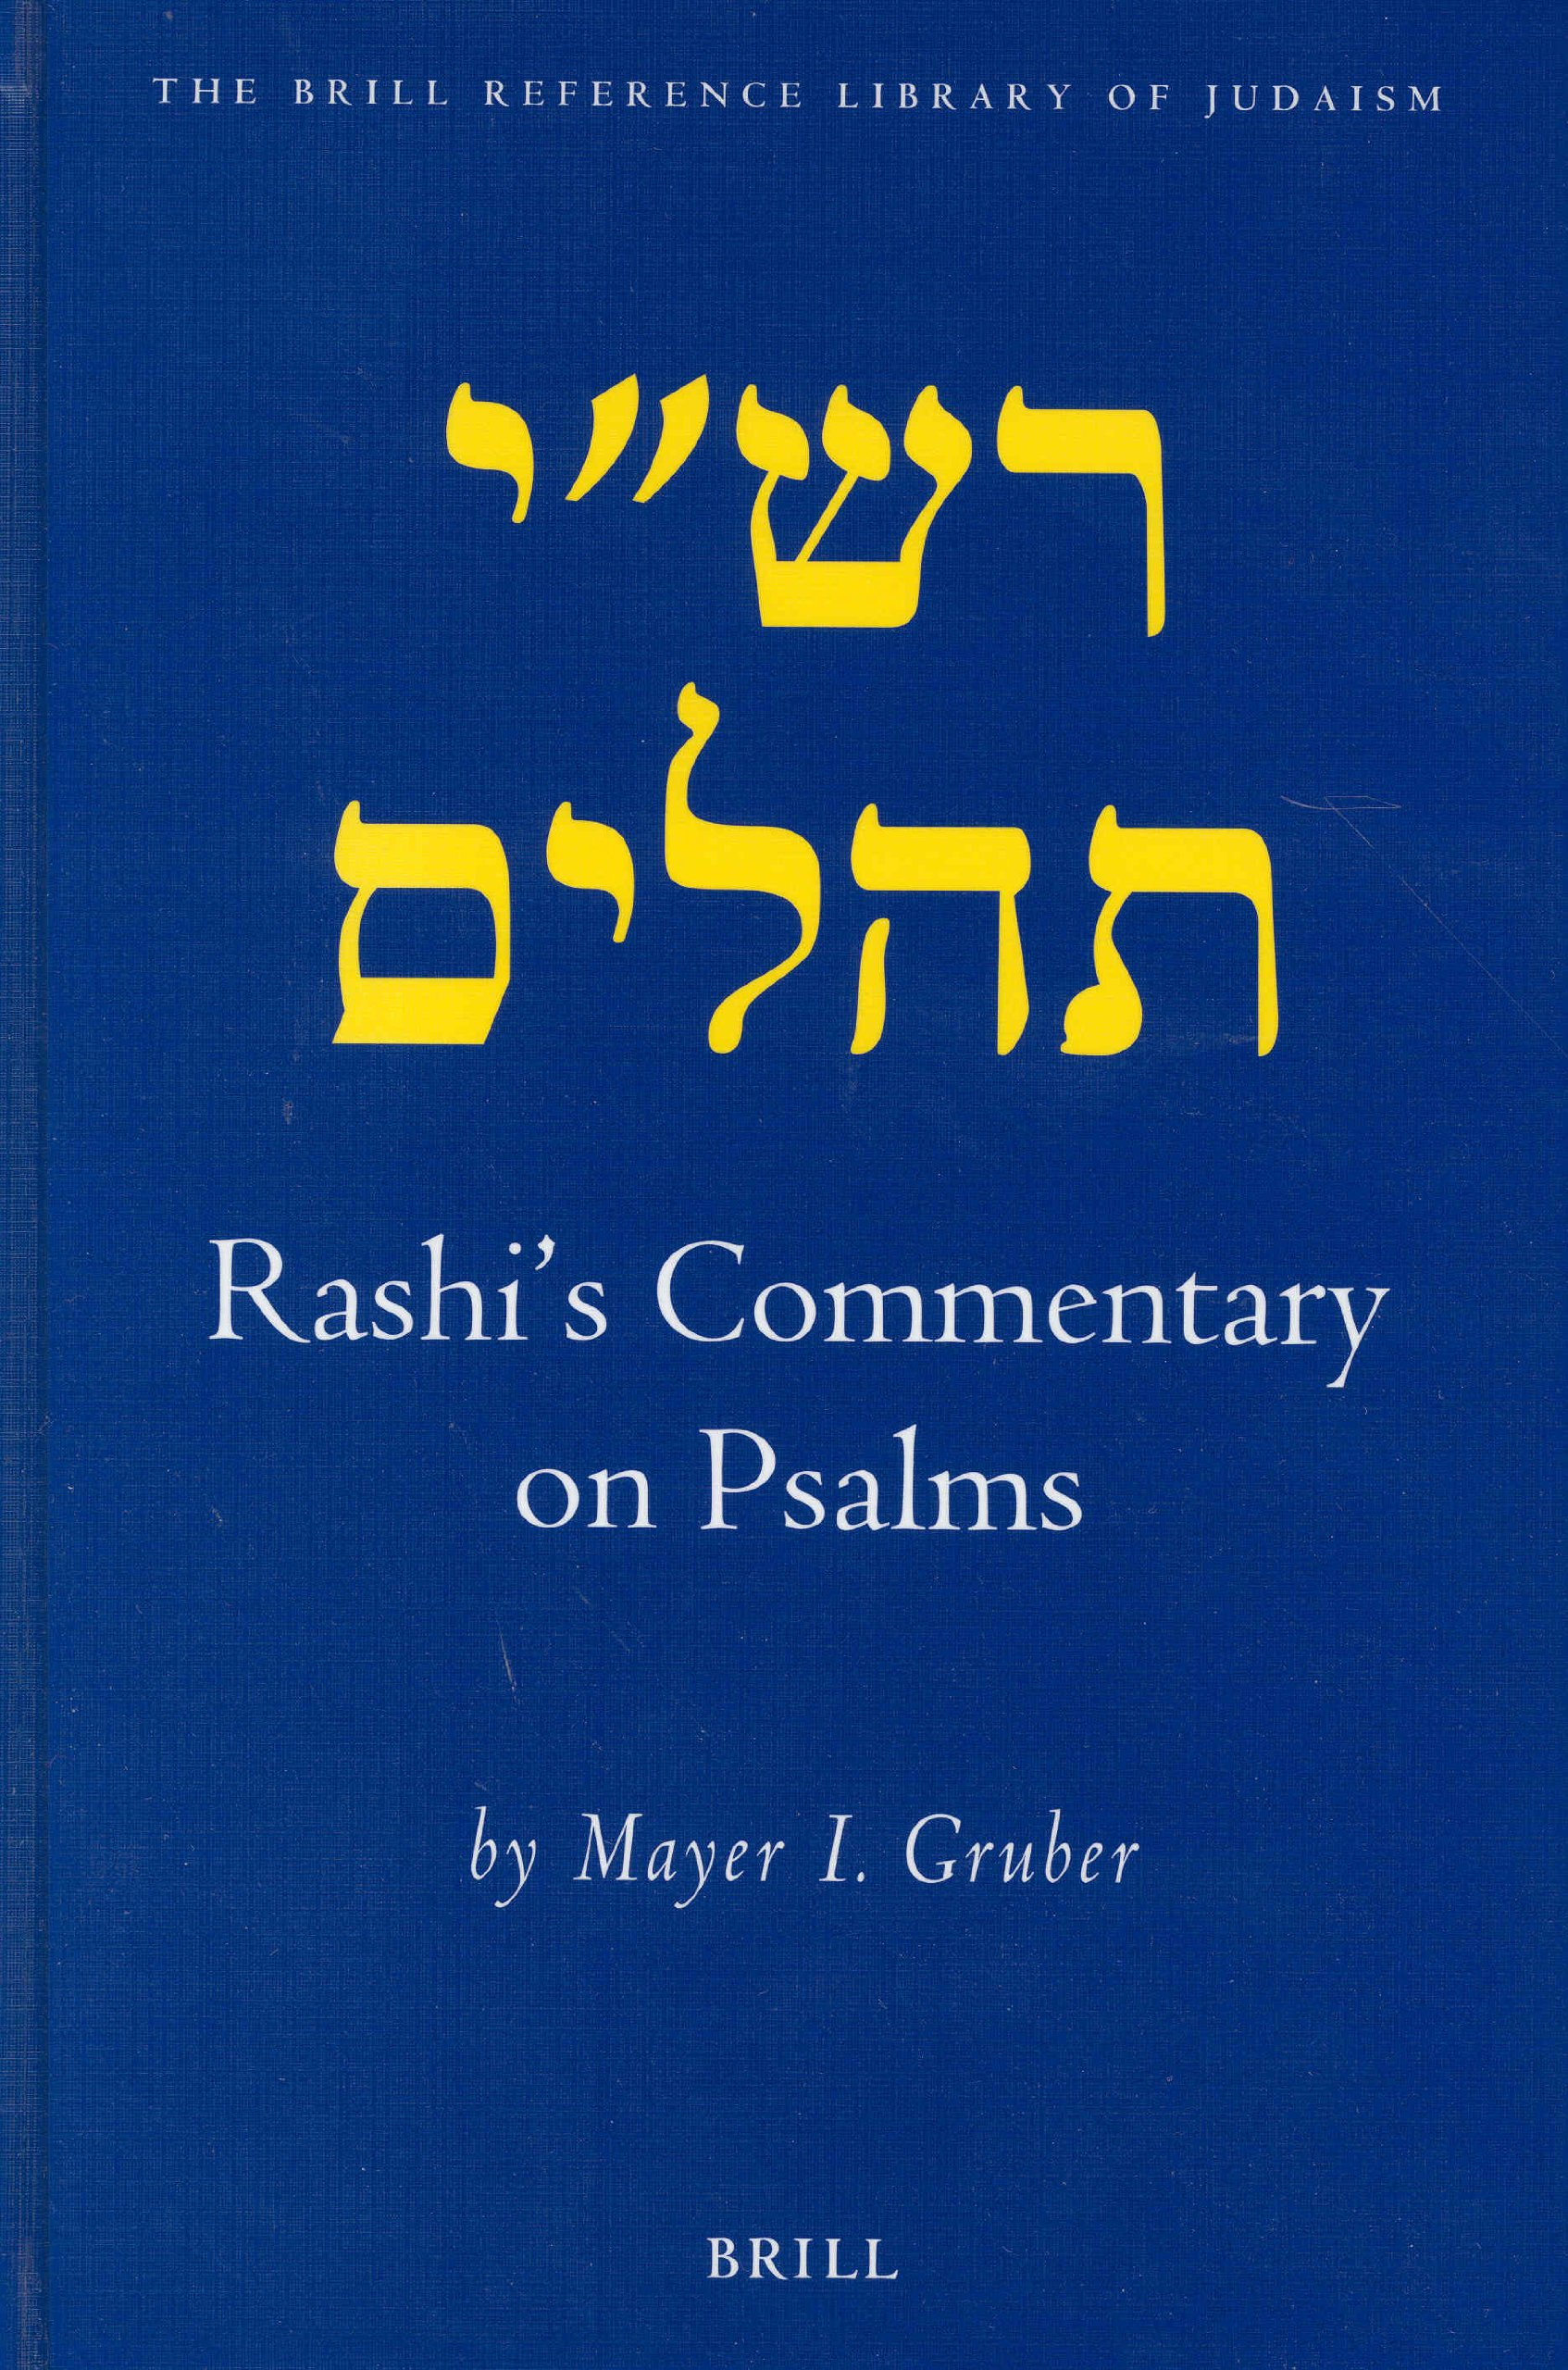 Download Rashi's Commentary on Psalms (Brill Reference Library of Judaism.) ebook